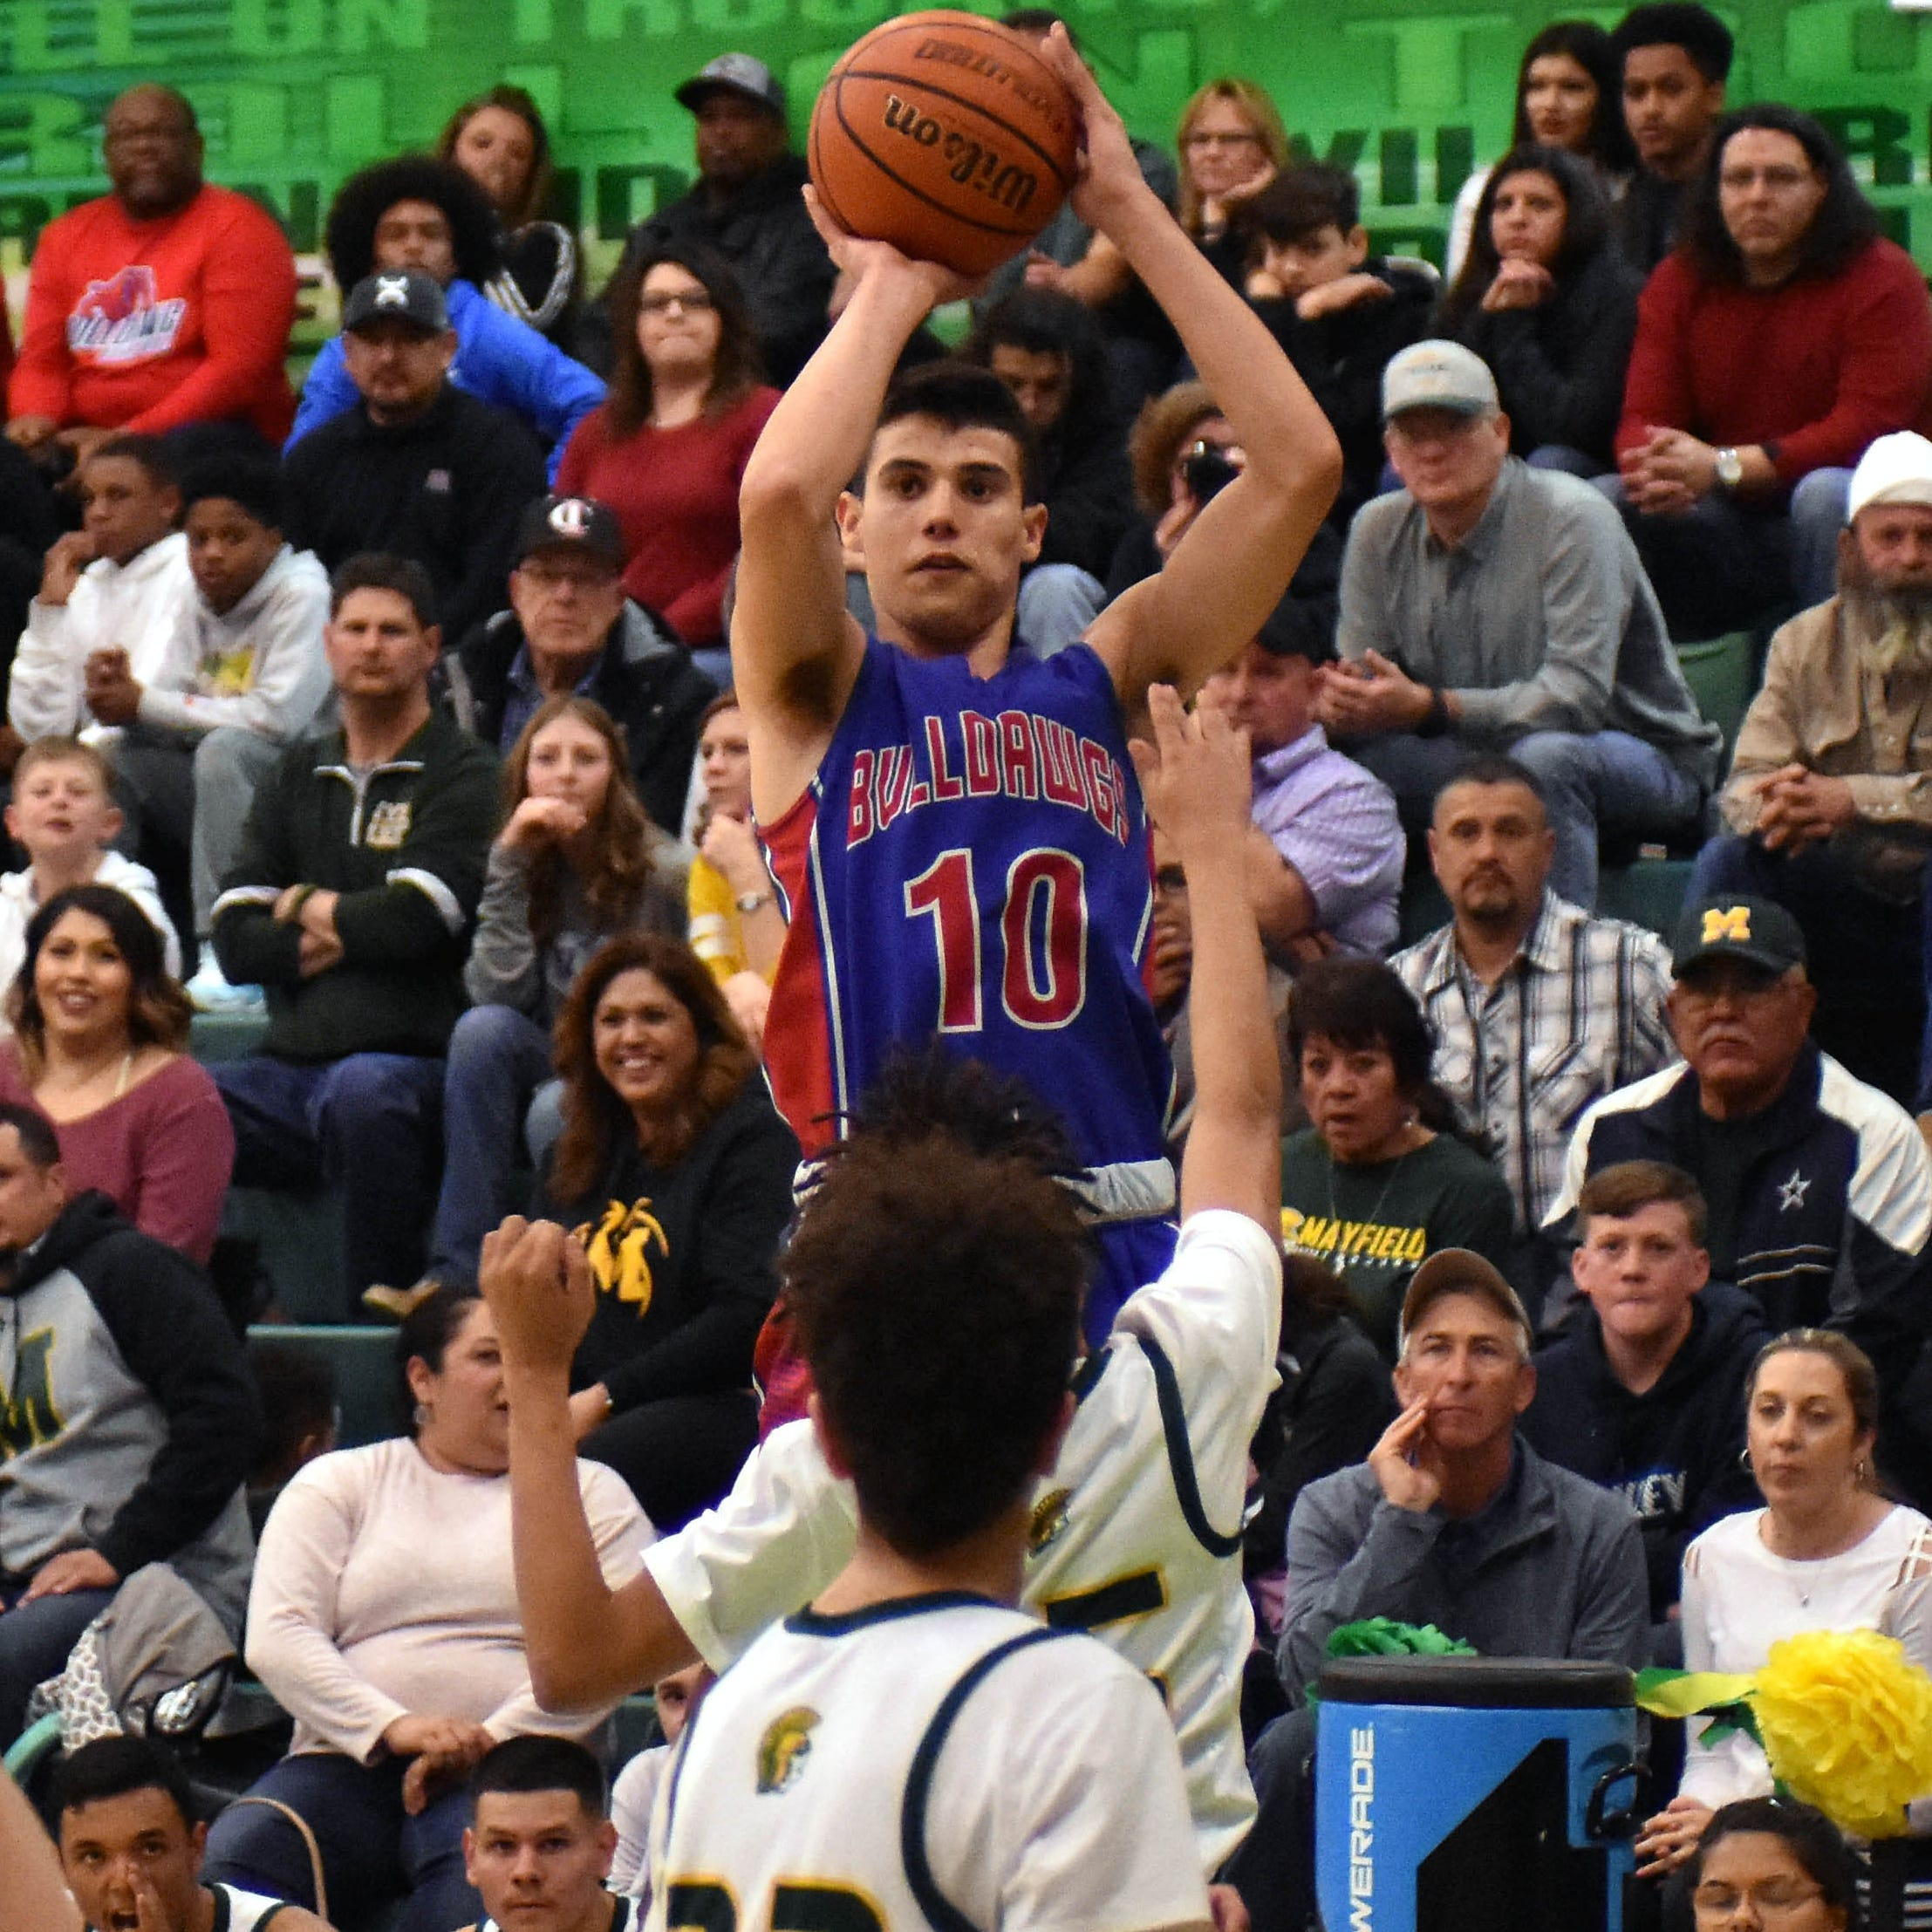 Corbalan adds international flare to undefeated Bulldawgs